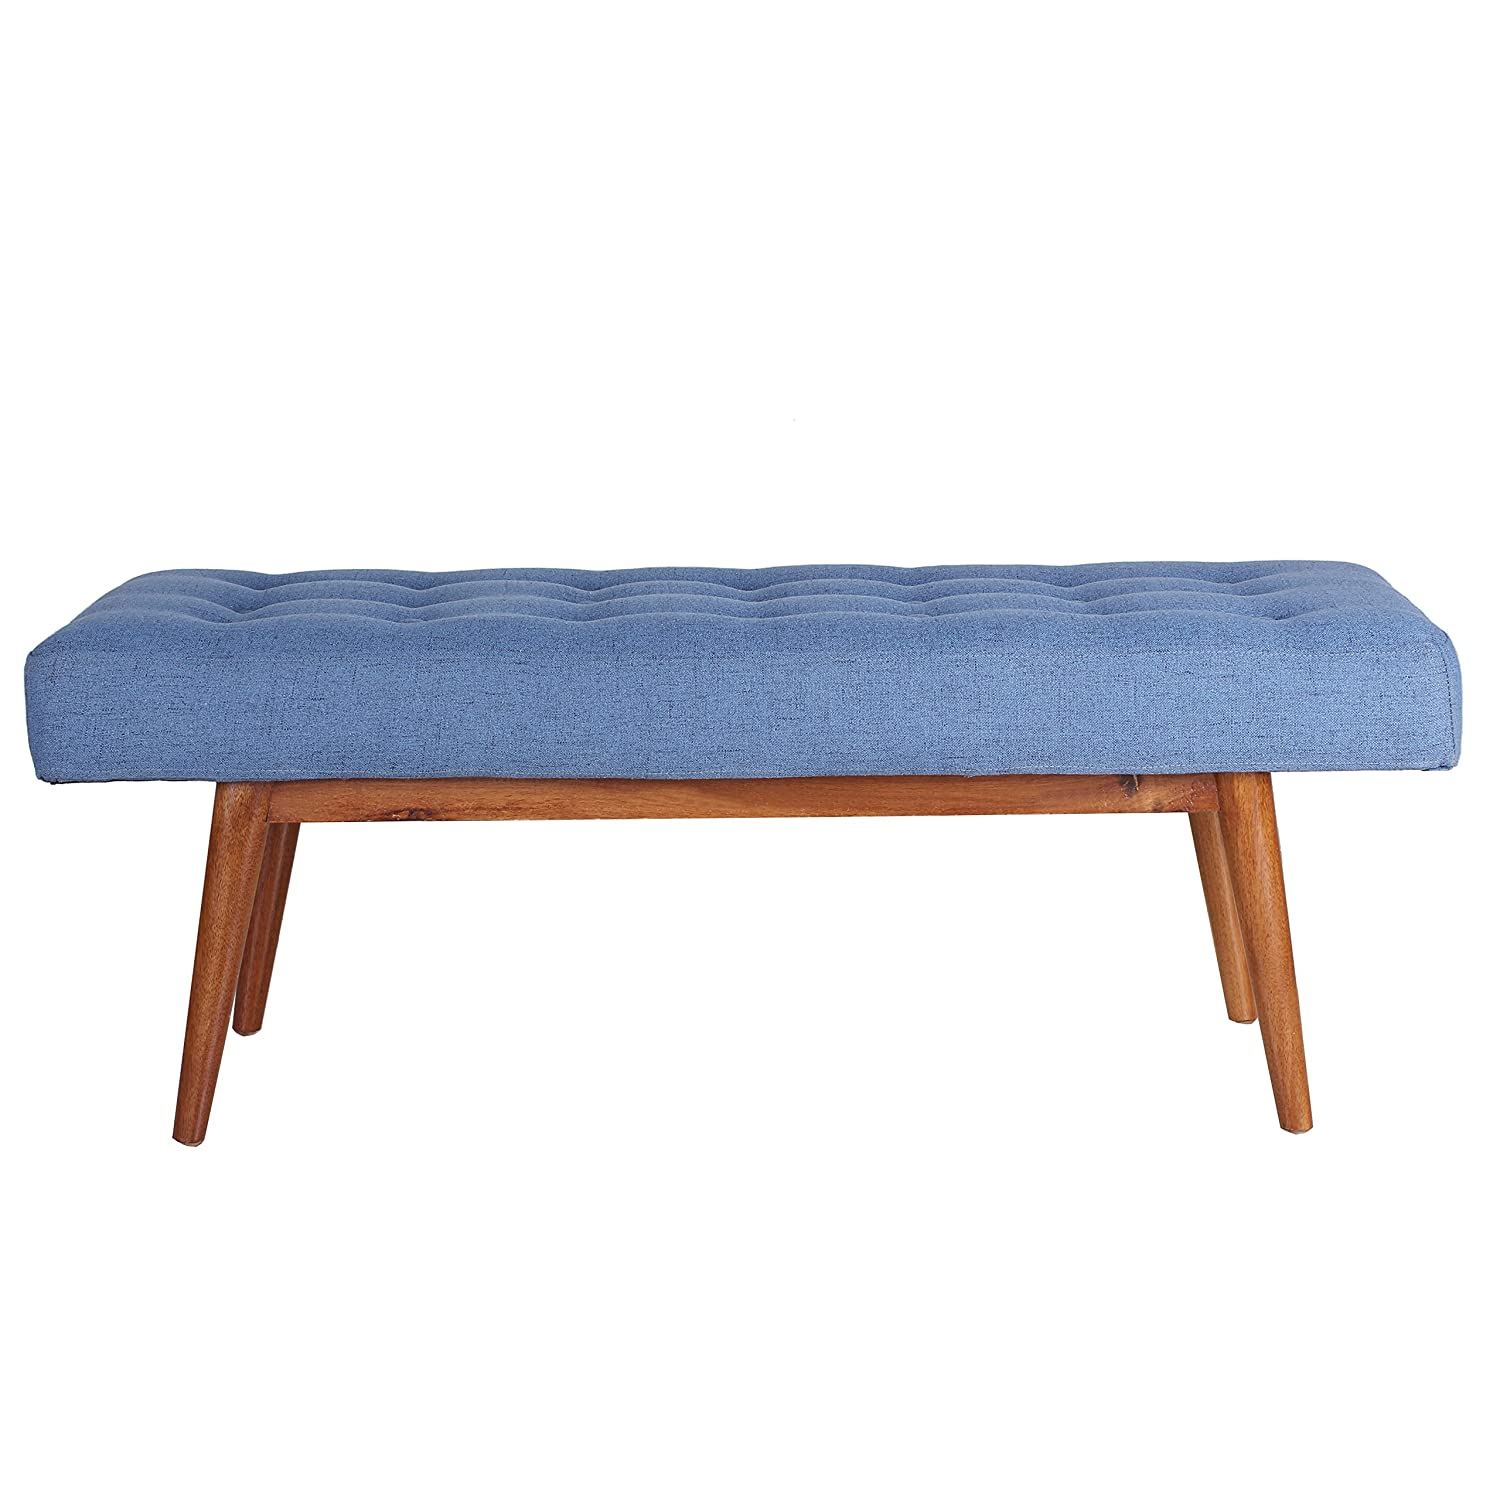 Amazon.com: Porthos Home Etheline Side Bench, Blue: Kitchen & Dining